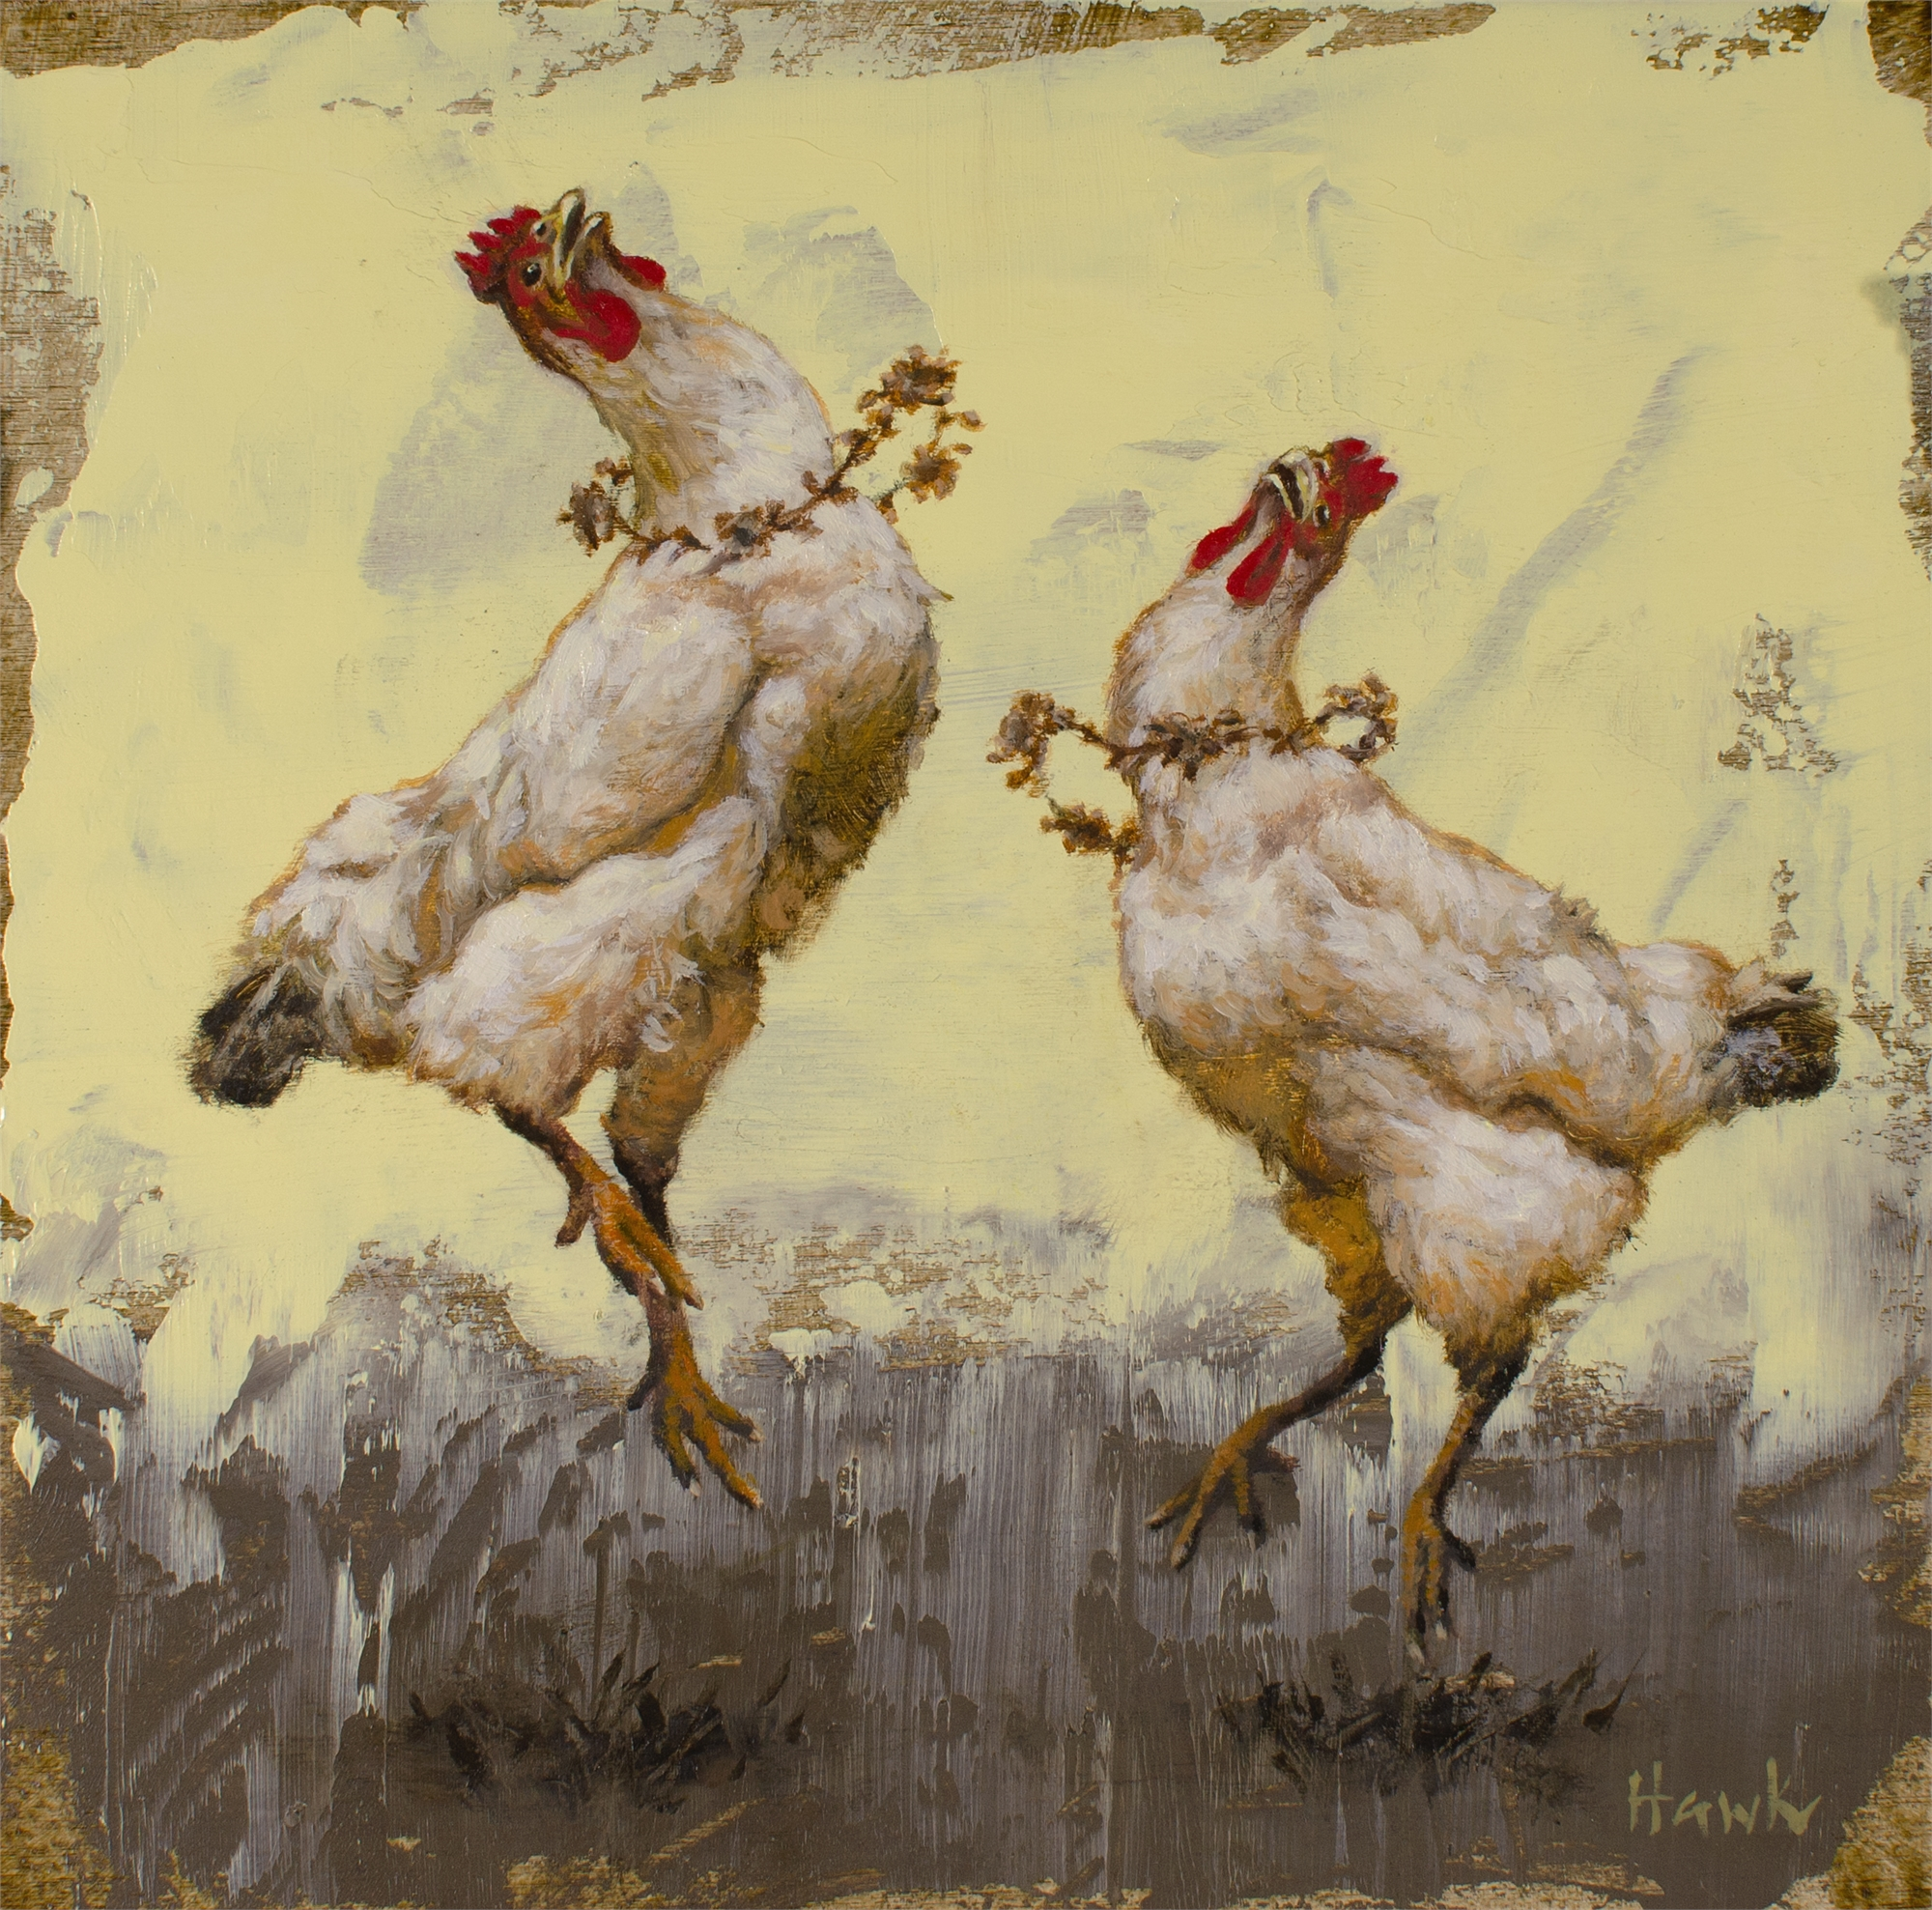 Fancy Dancing Chicks by Dana Hawk